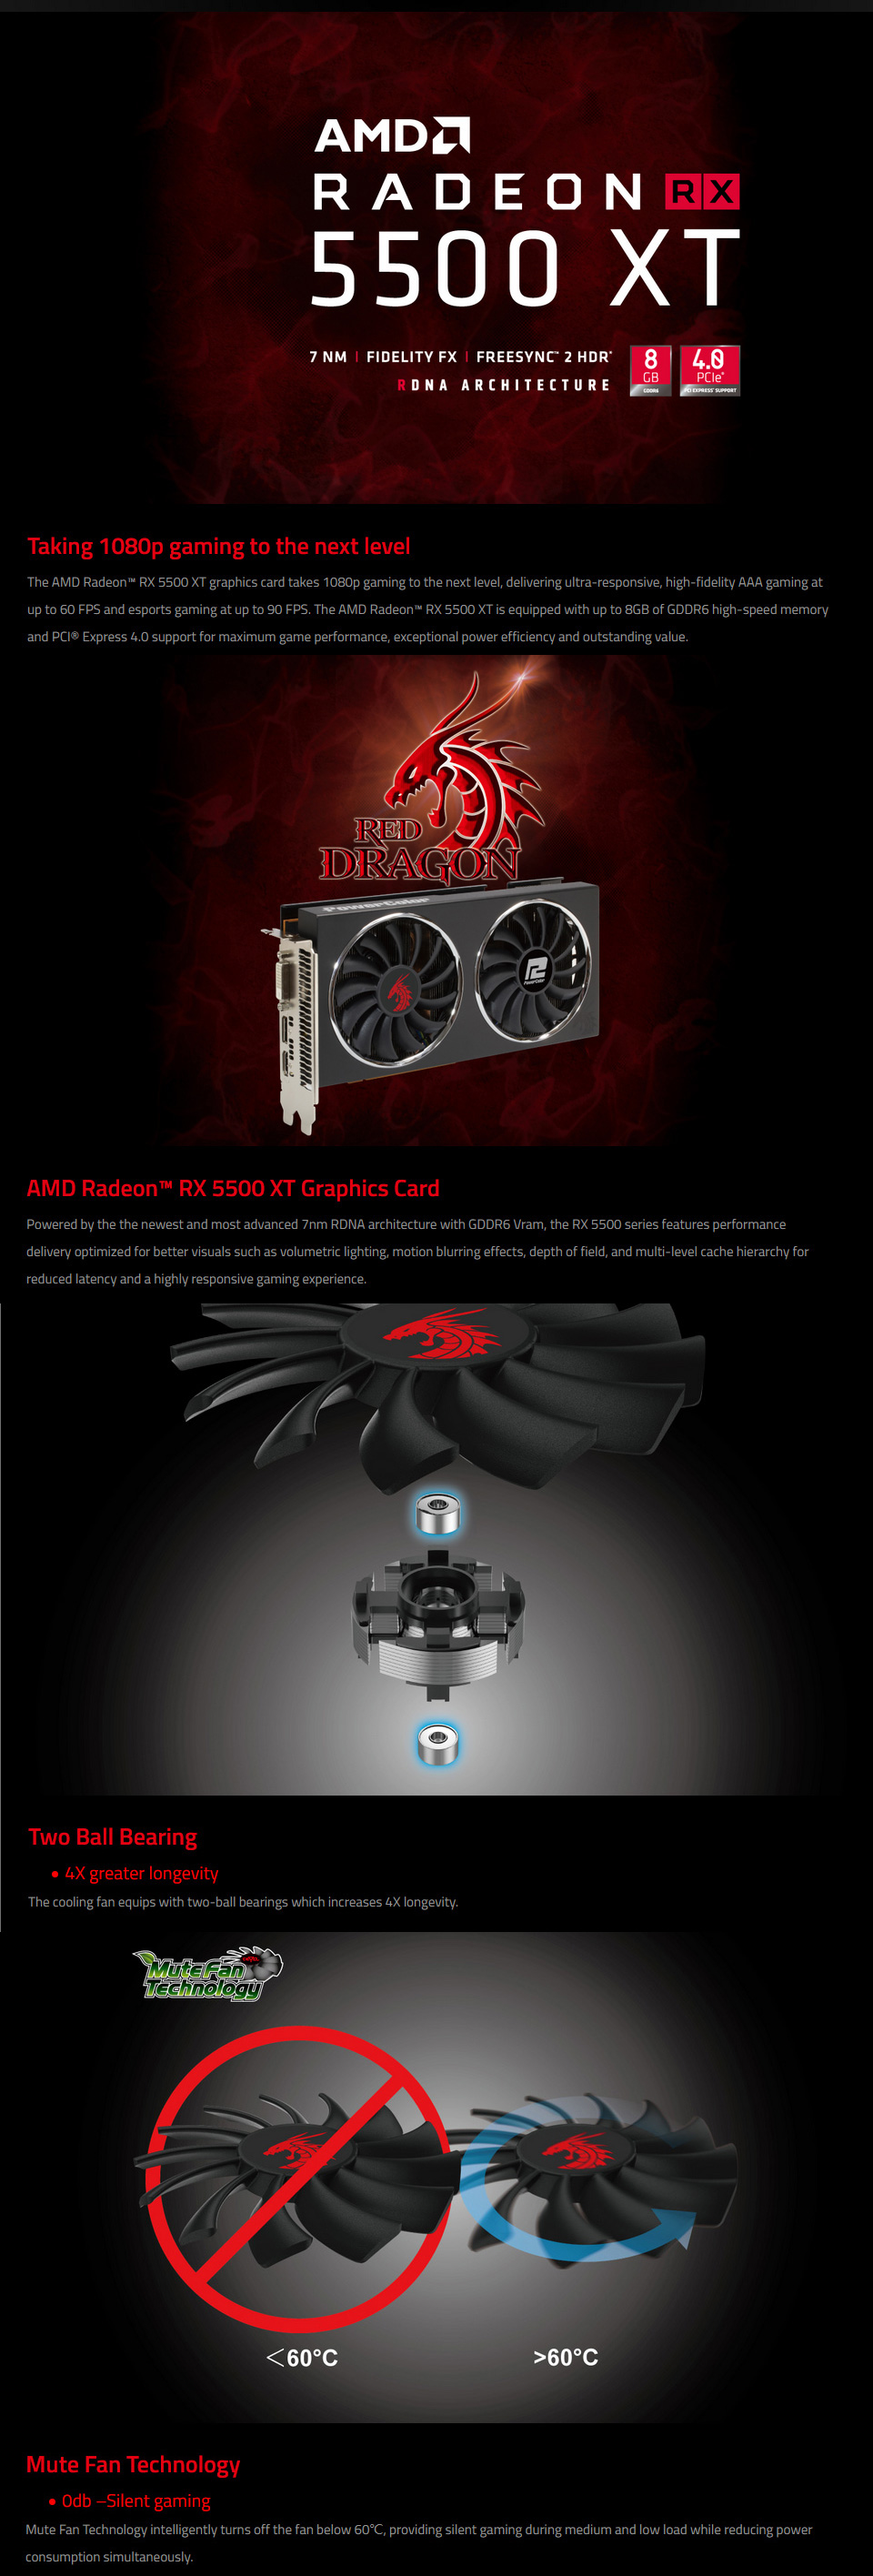 PowerColor Radeon RX 5500 XT Red Dragon 8GB features 1